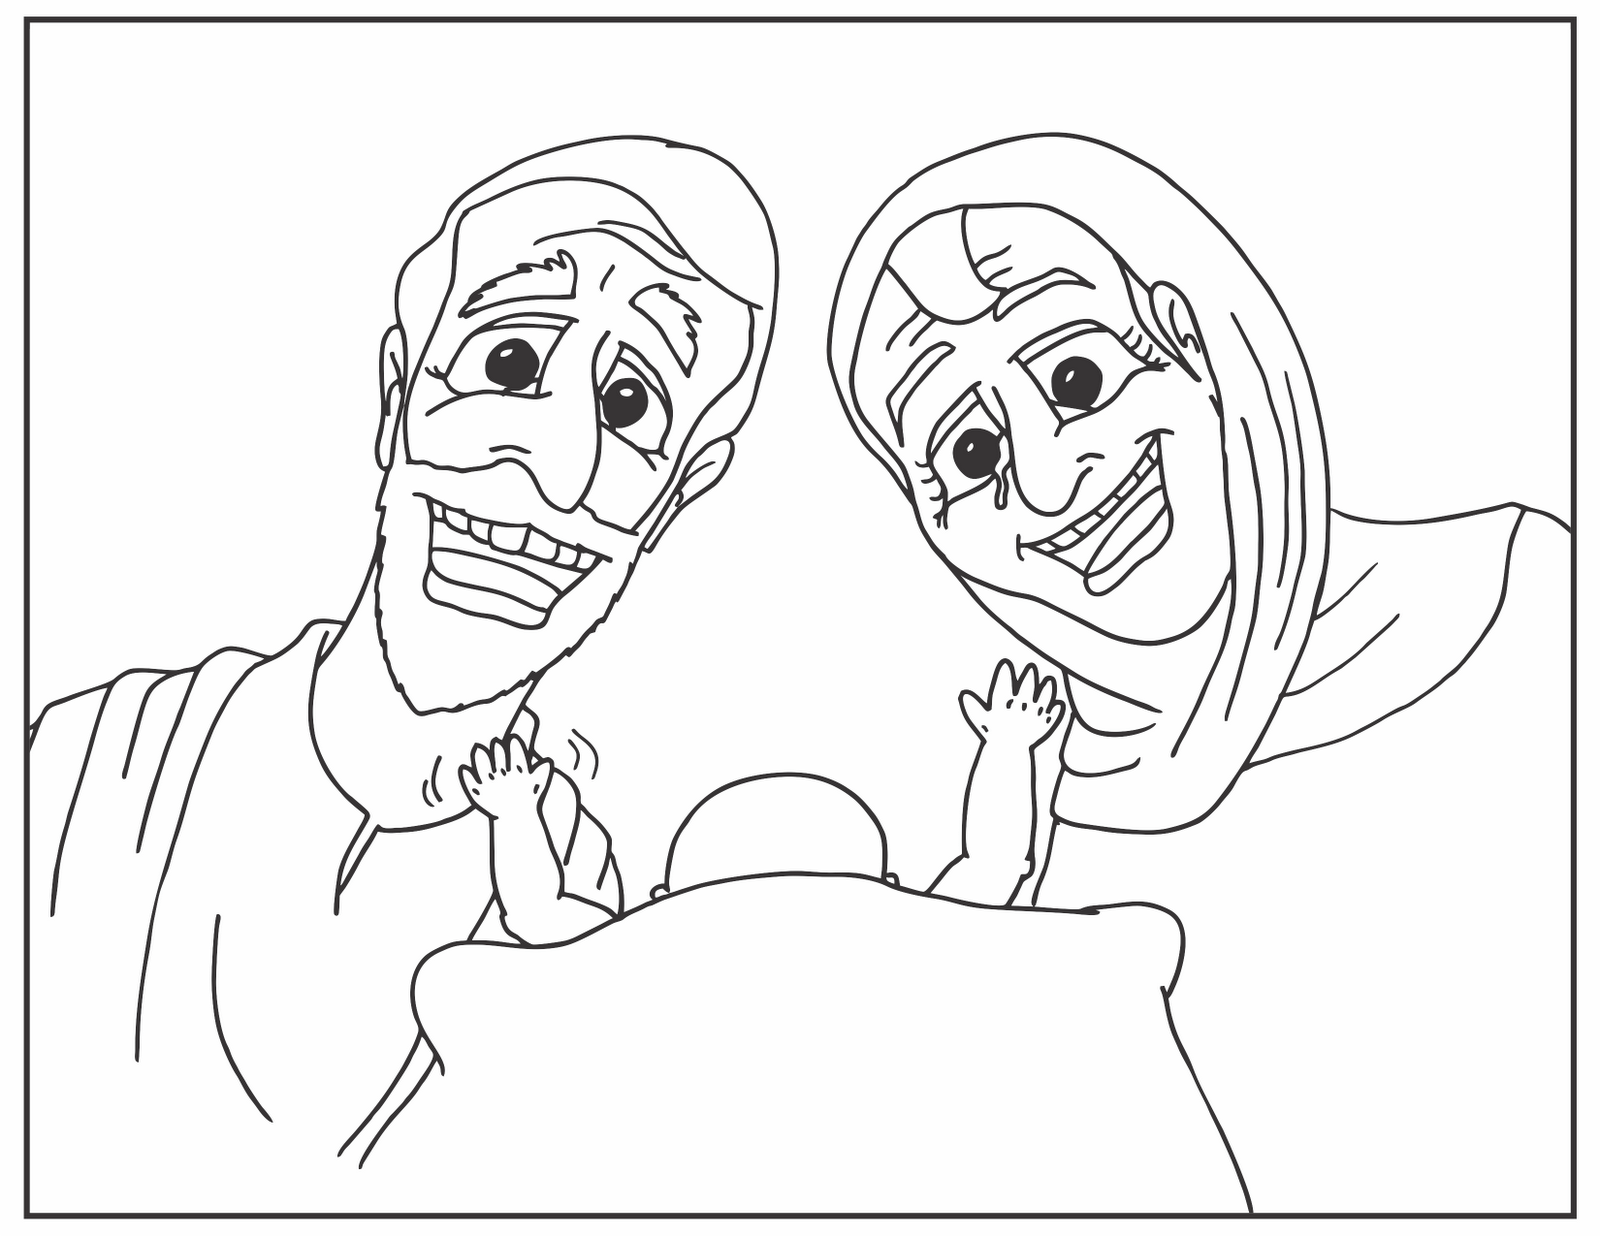 Baby isaac coloring pages download and print for free